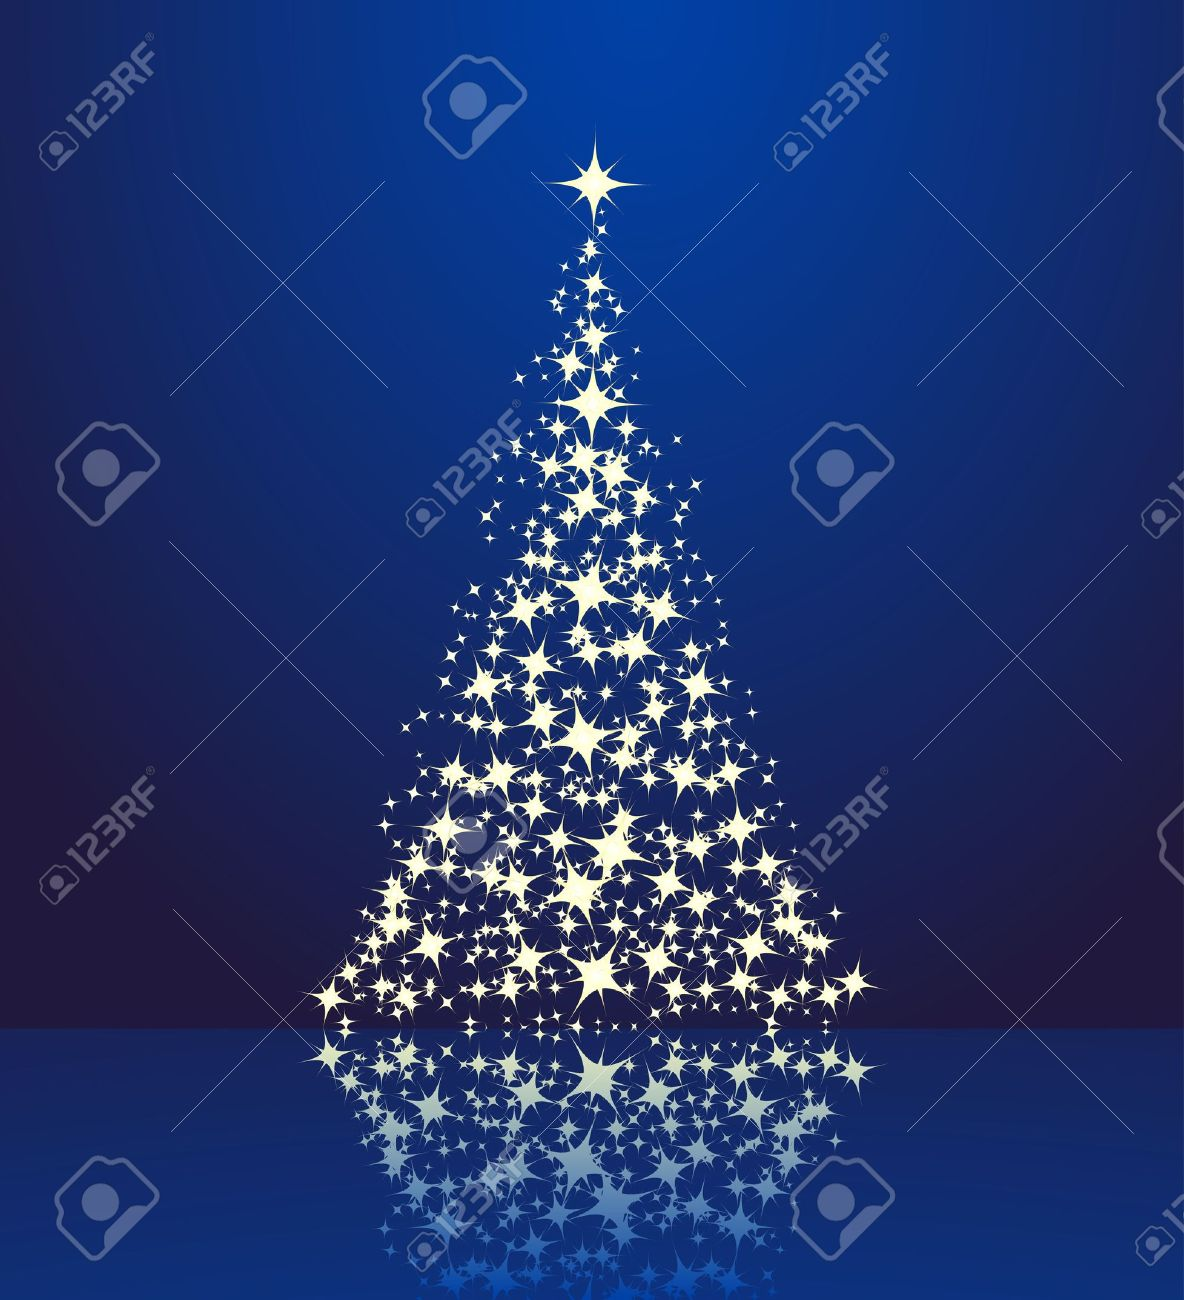 Christmas background, silhouette of a christmas tree. Stock Vector - 7532299